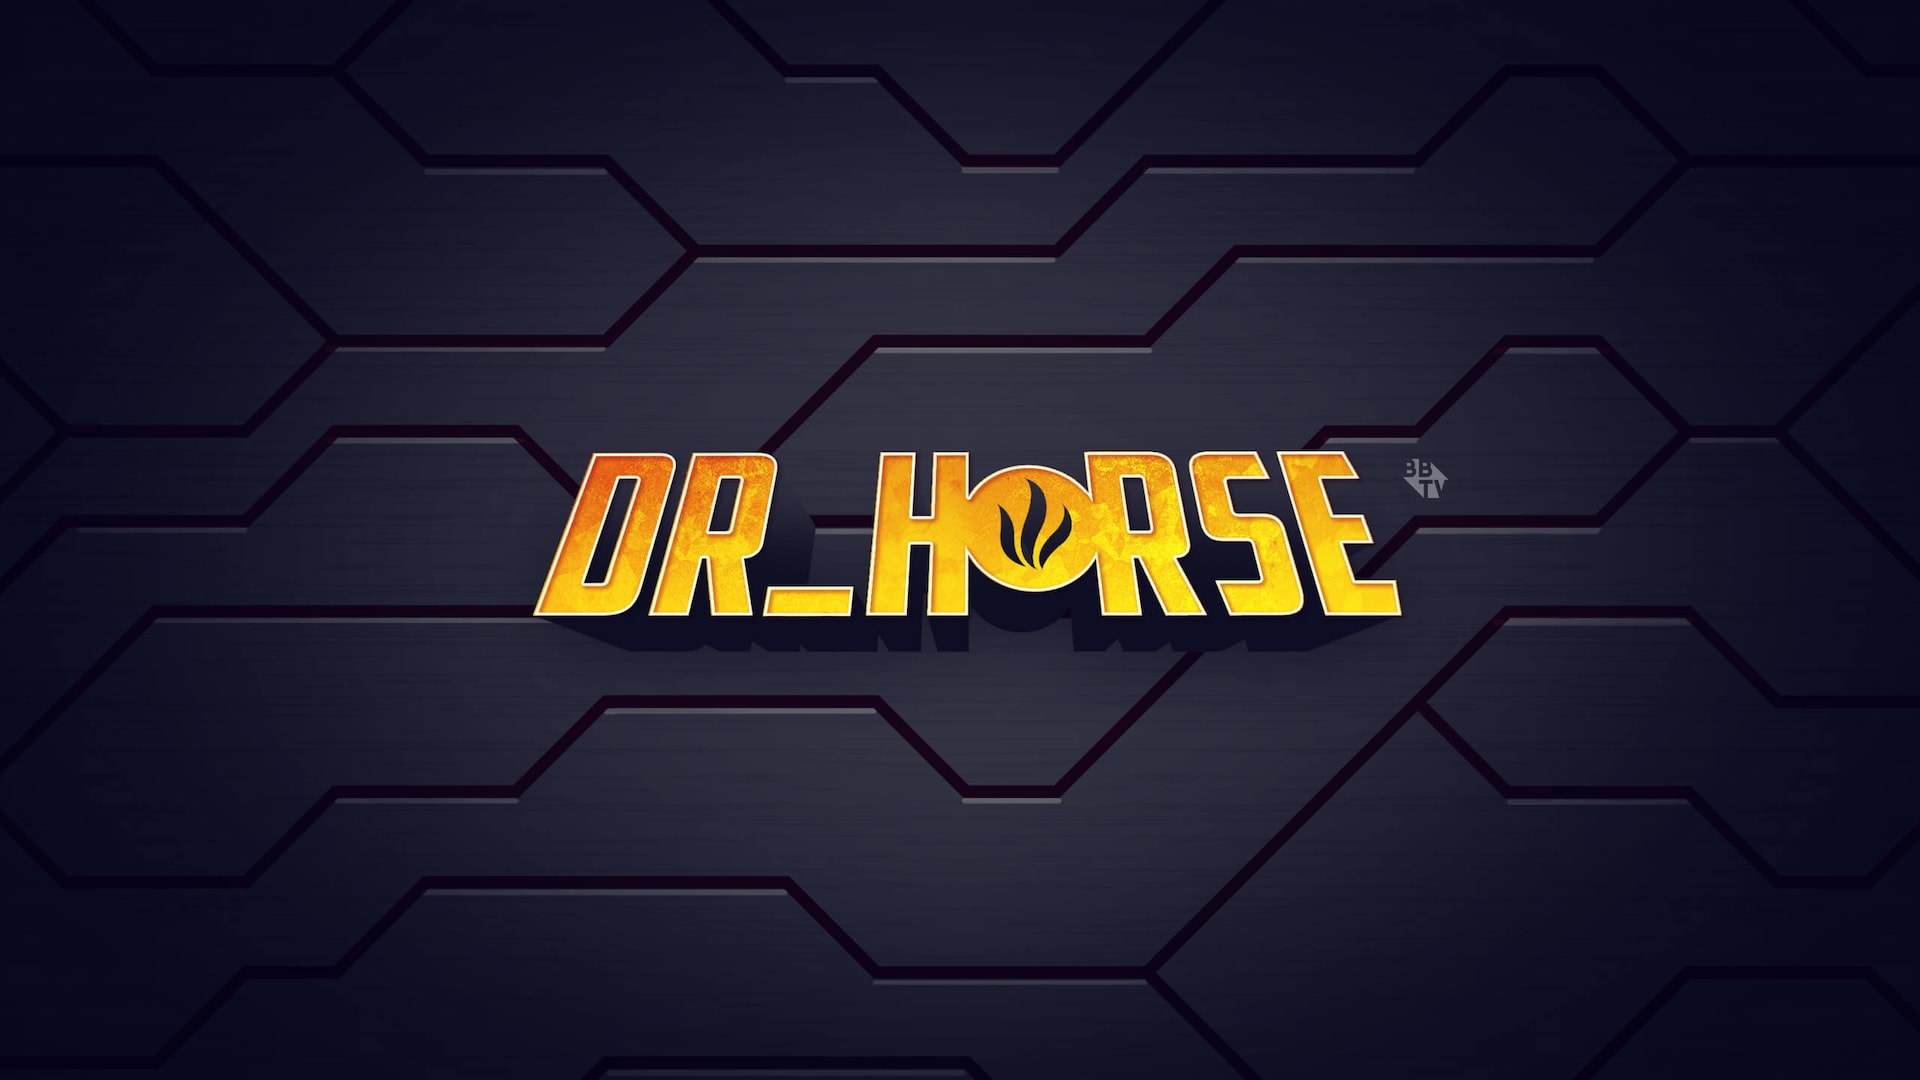 Dr_Horse on the Epic Games Store